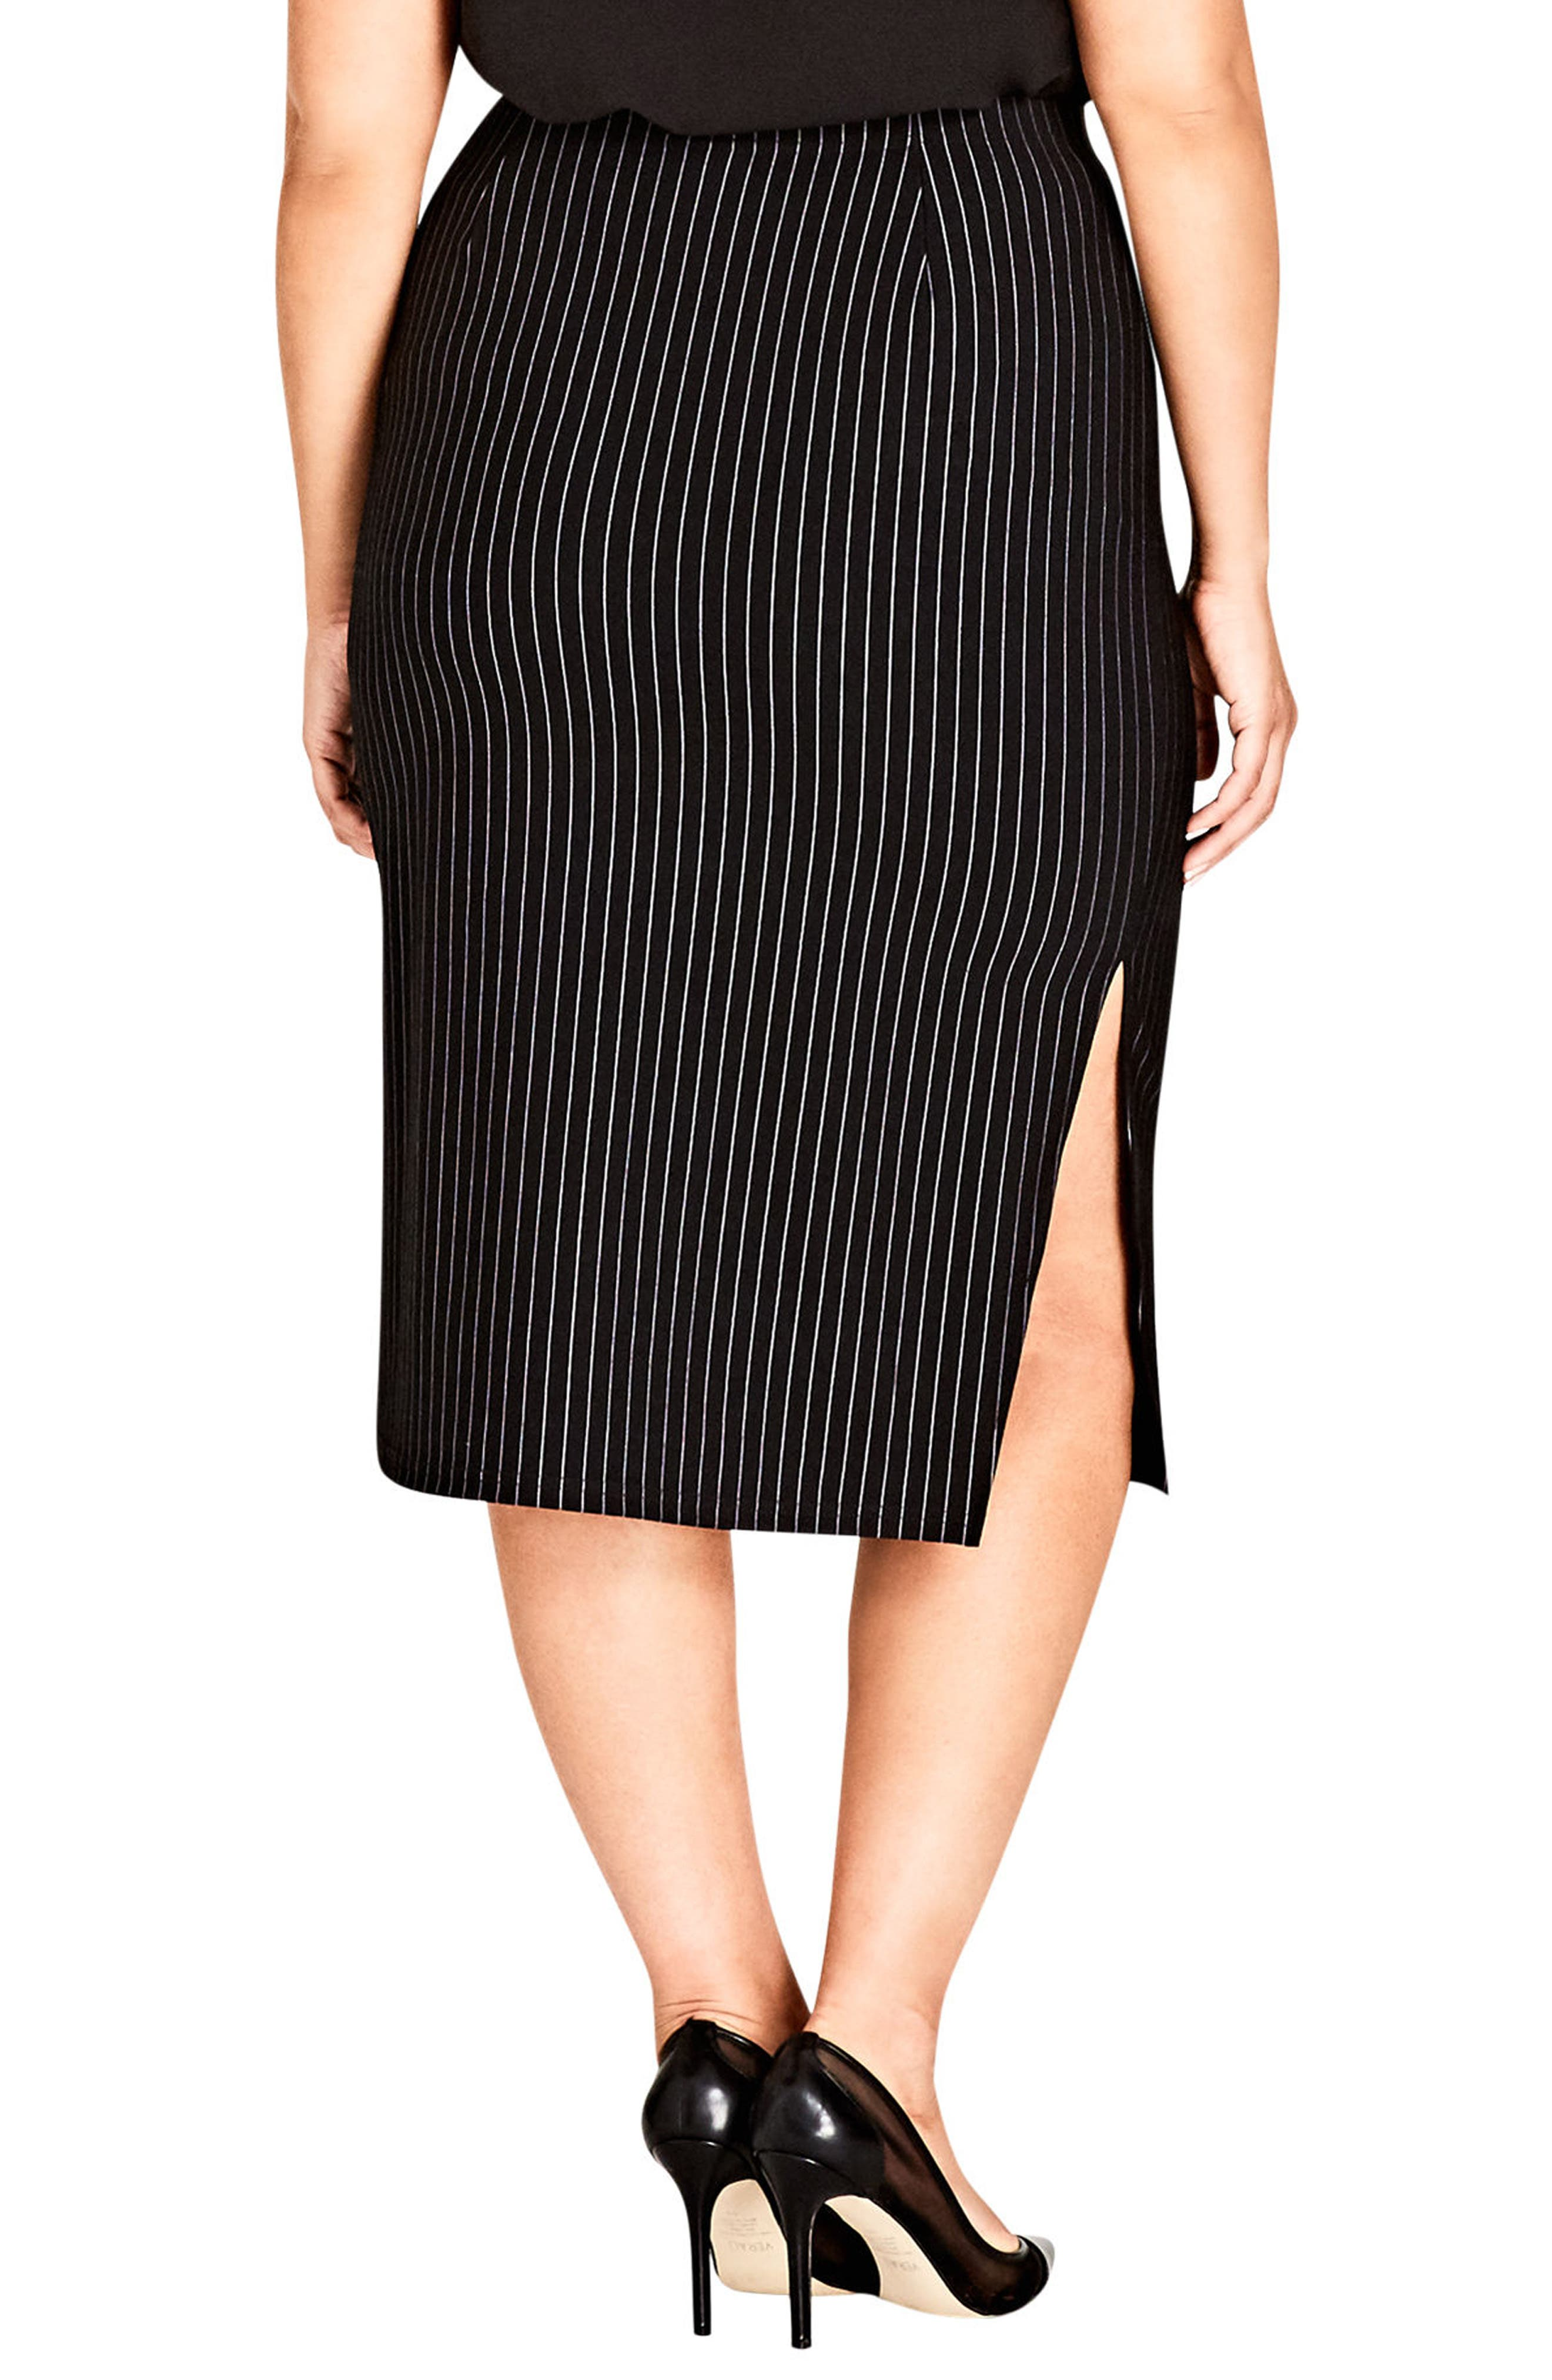 Chic City On Point Pencil skirt,                             Alternate thumbnail 2, color,                             001